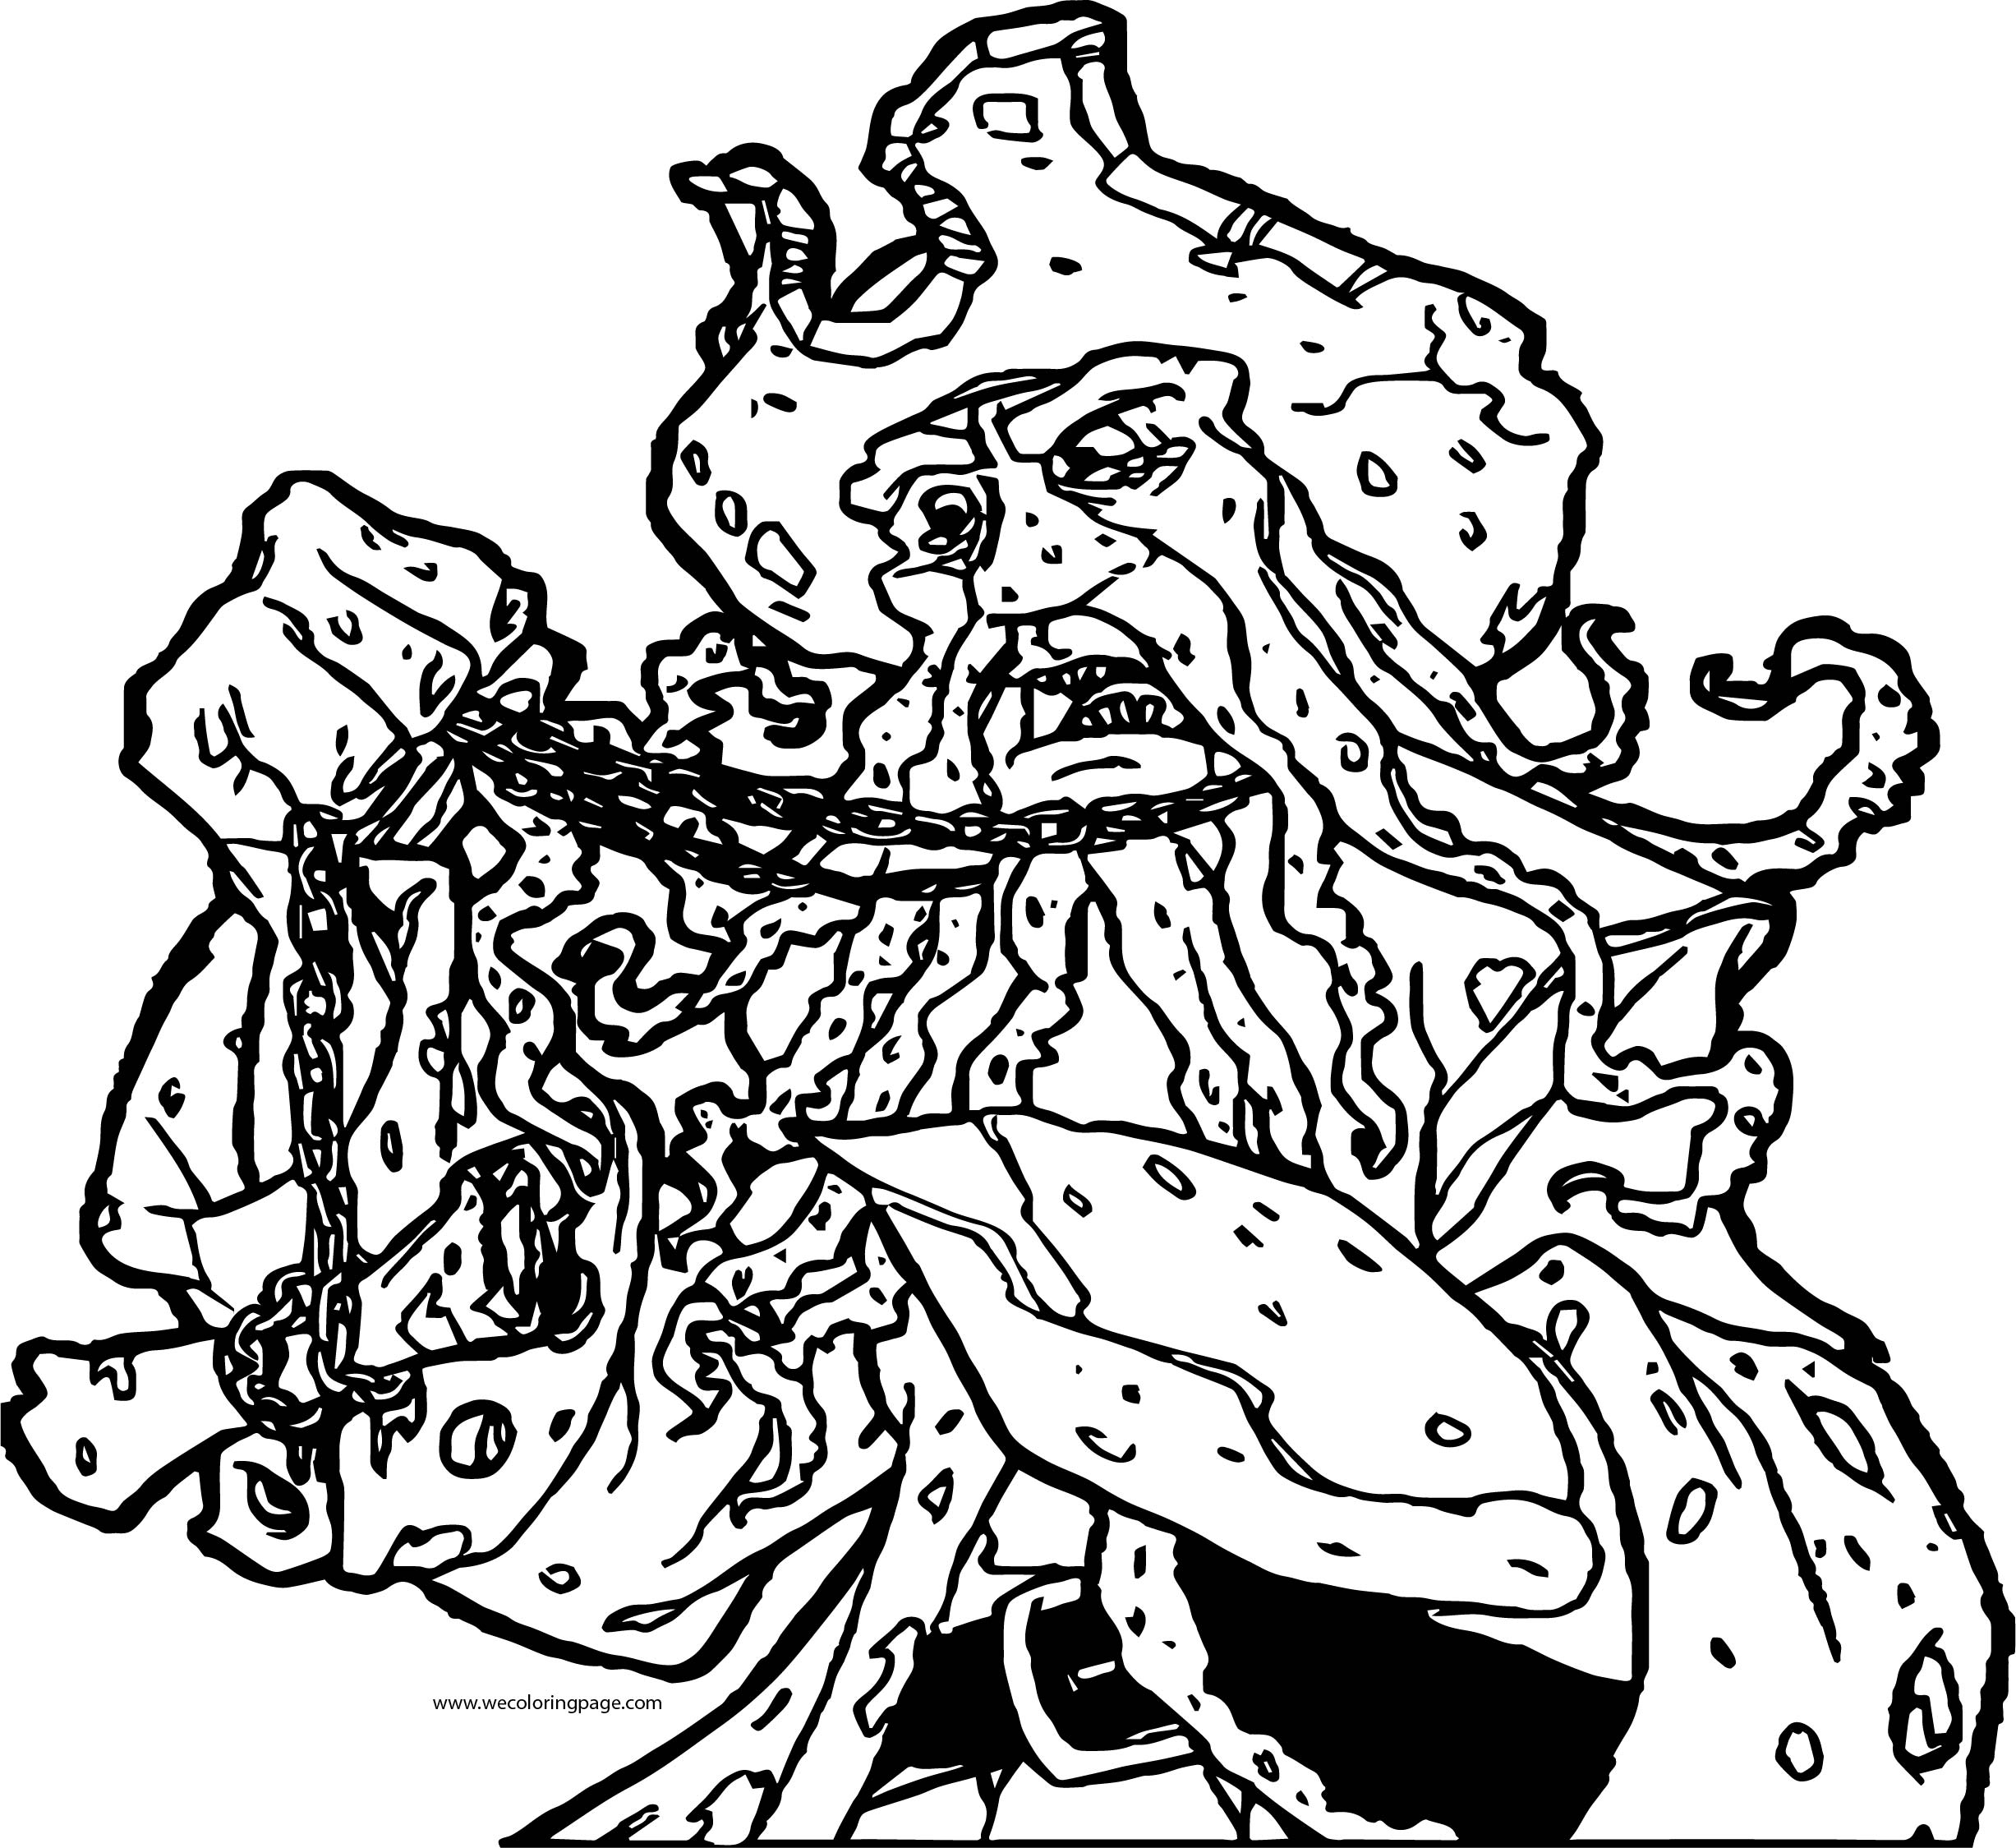 Pirates of the Caribbean Man Character Dave Jones Catch Coloring Page